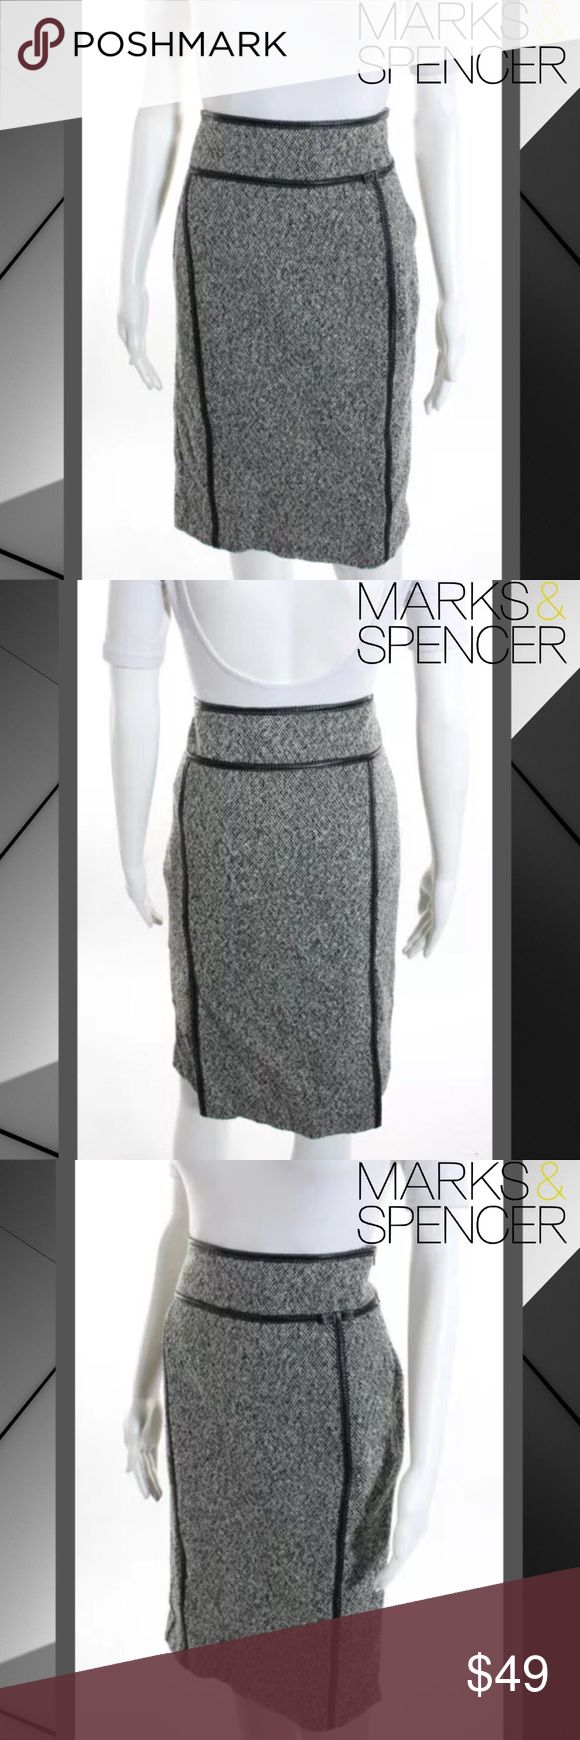 "MARKS & SPENCER Blk/Wht Tweed Print Woolen Skirt SIZE 10. 27"" Length. 30.75"" Waist. Black, White & Gray Colors. Black Piping Accents & Bow. Side Zipper & Eye Closure. 80% Wool/20% Polyamide. Pencil Skirt Style. Tweed Look. Stunning & Classy. Perfect Condition. Marks & Spencer Skirts Pencil"